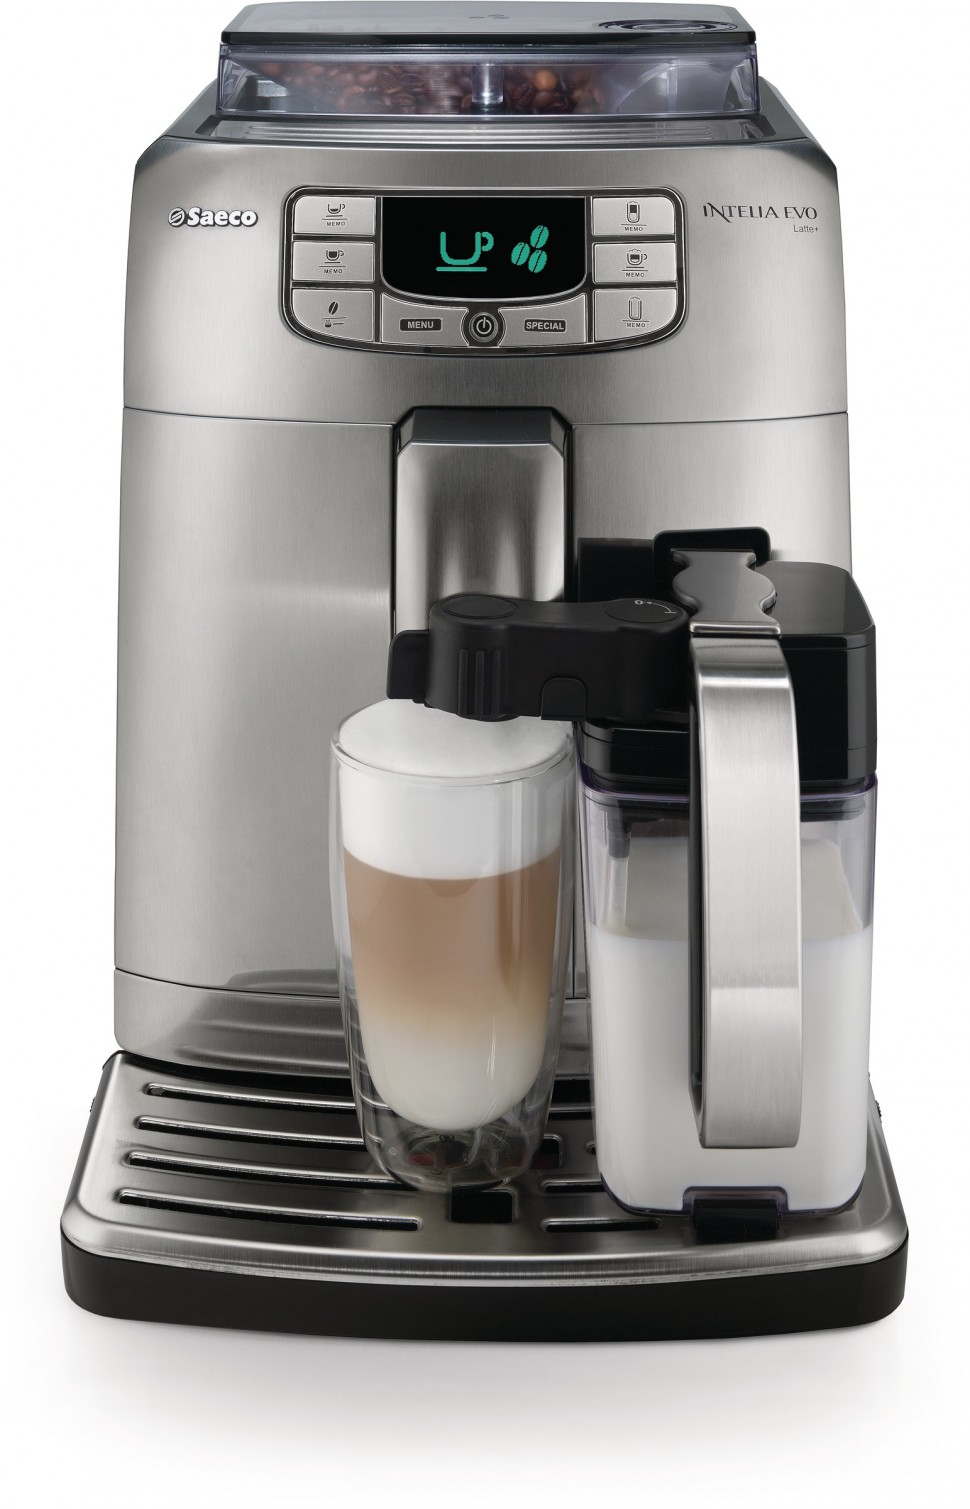 philips saeco hd8753 92 intelia evo super automatic espresso machine genuine new ebay. Black Bedroom Furniture Sets. Home Design Ideas